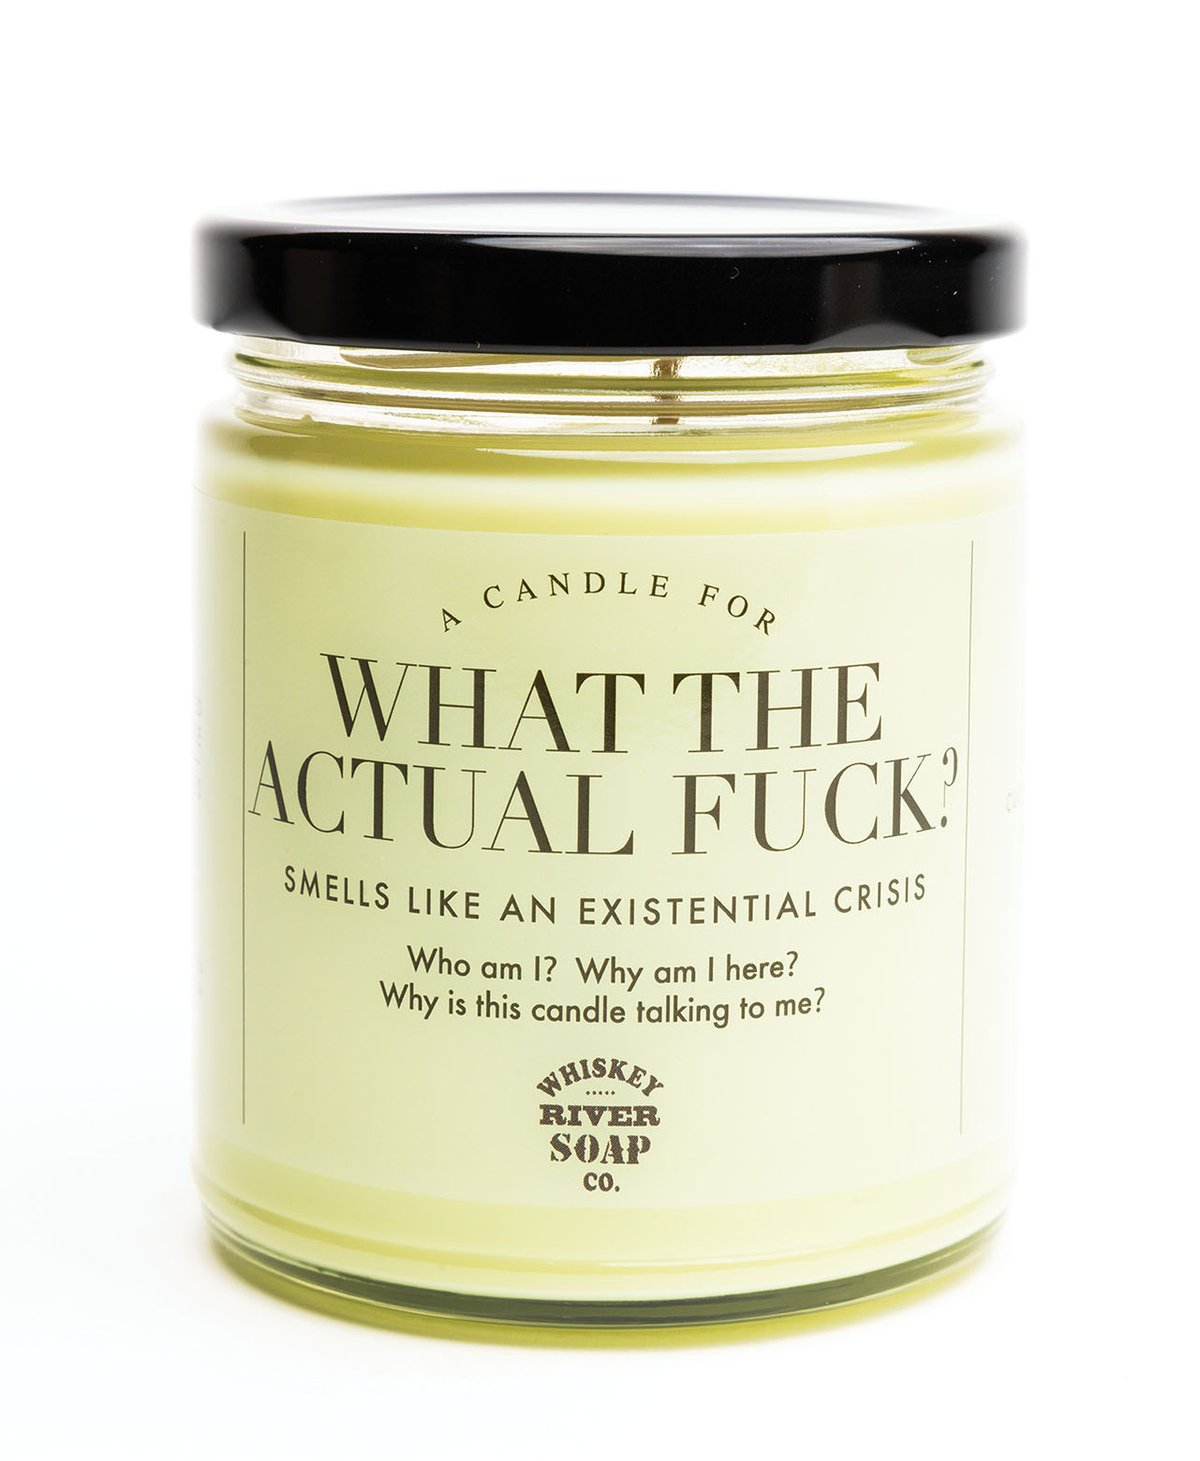 WTF Candle for What the Actual F*ck - Heart of the Home PA